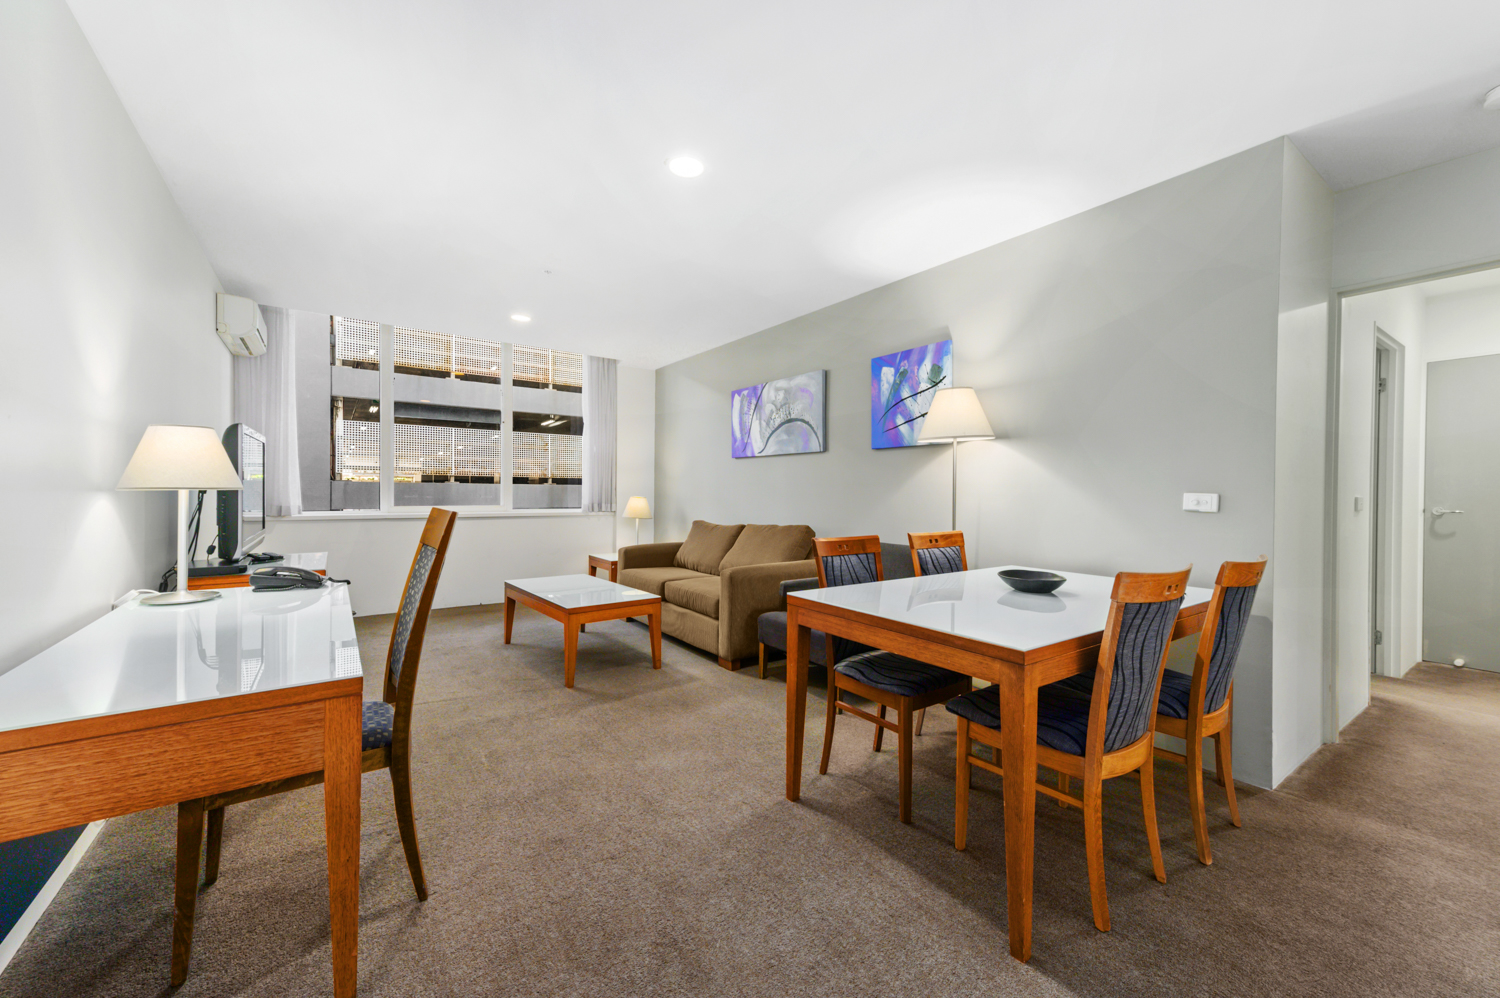 307-604-st-kilda-road-melbourne-student-accommodation-Melbourne-Living-area-Unilodgers